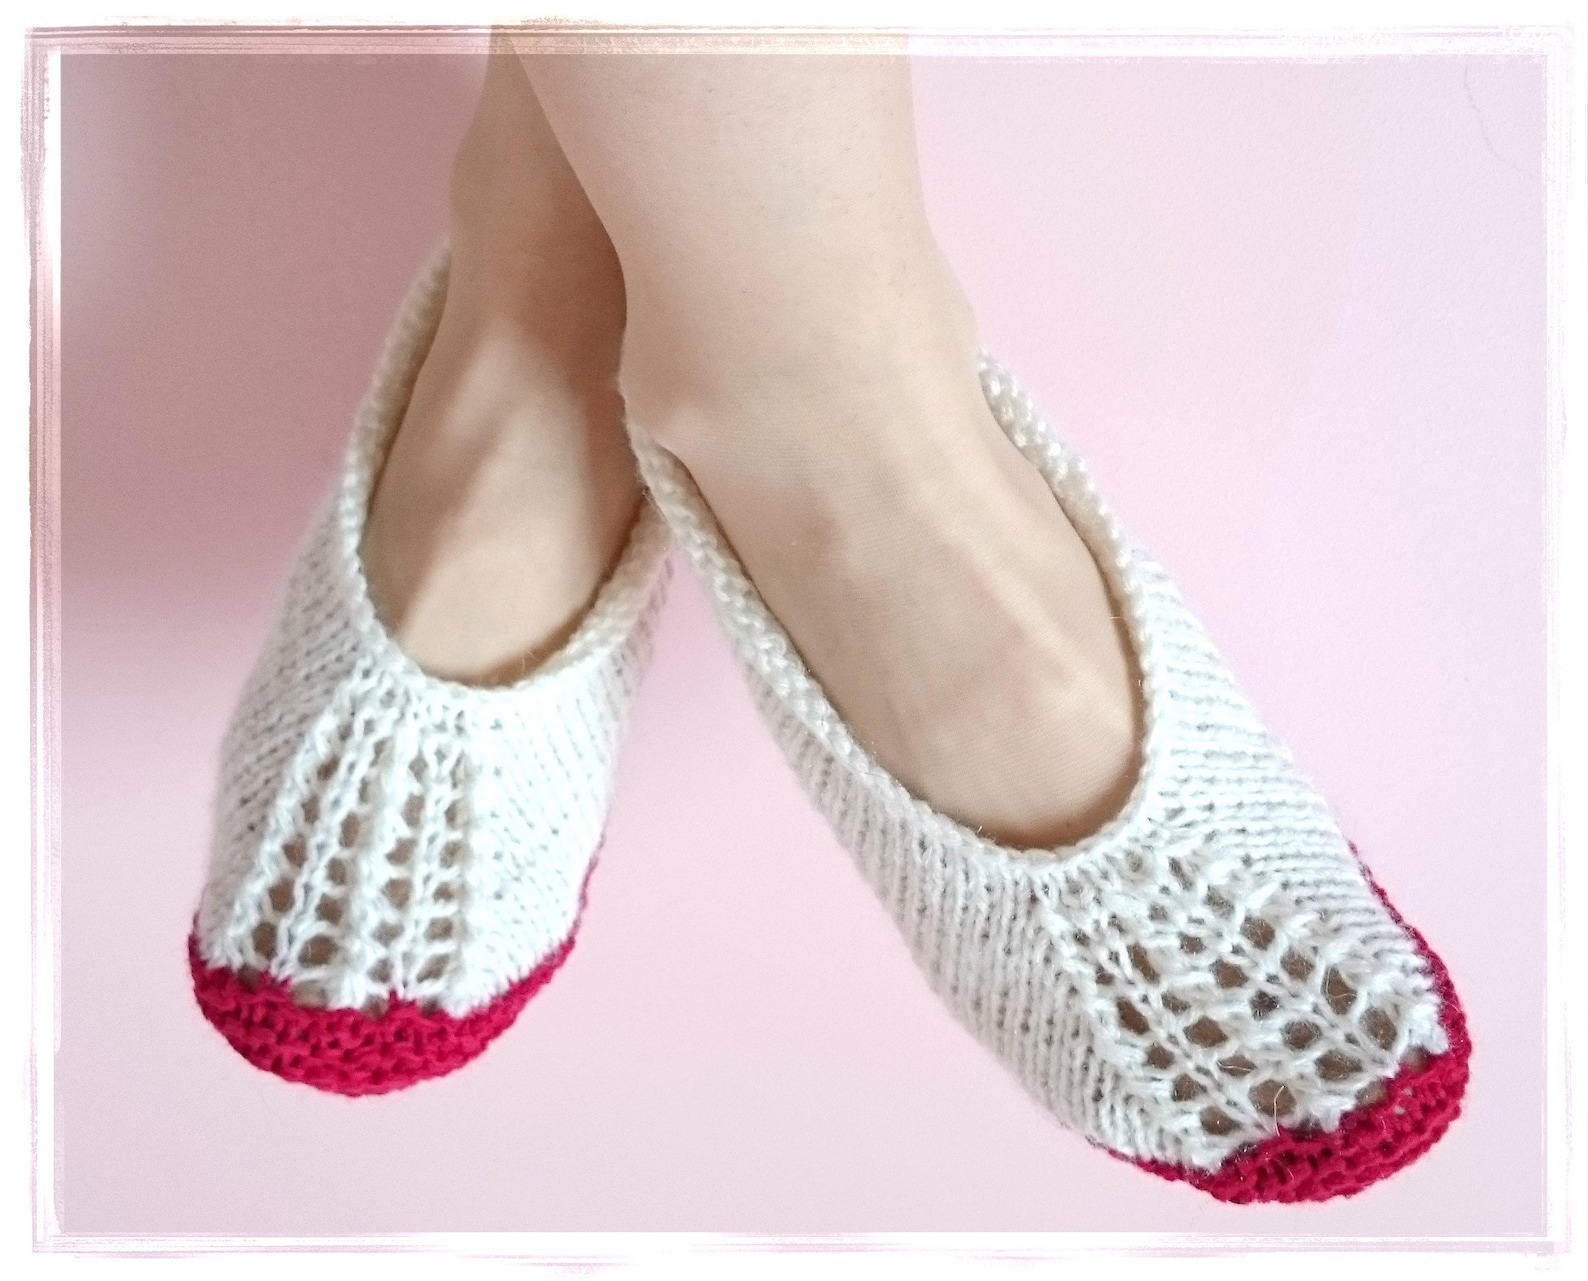 women slippers, slippers, cozy slippers, home shoes, house socks, knitted slippers, wedding flats, ballet flats, lace slippers,